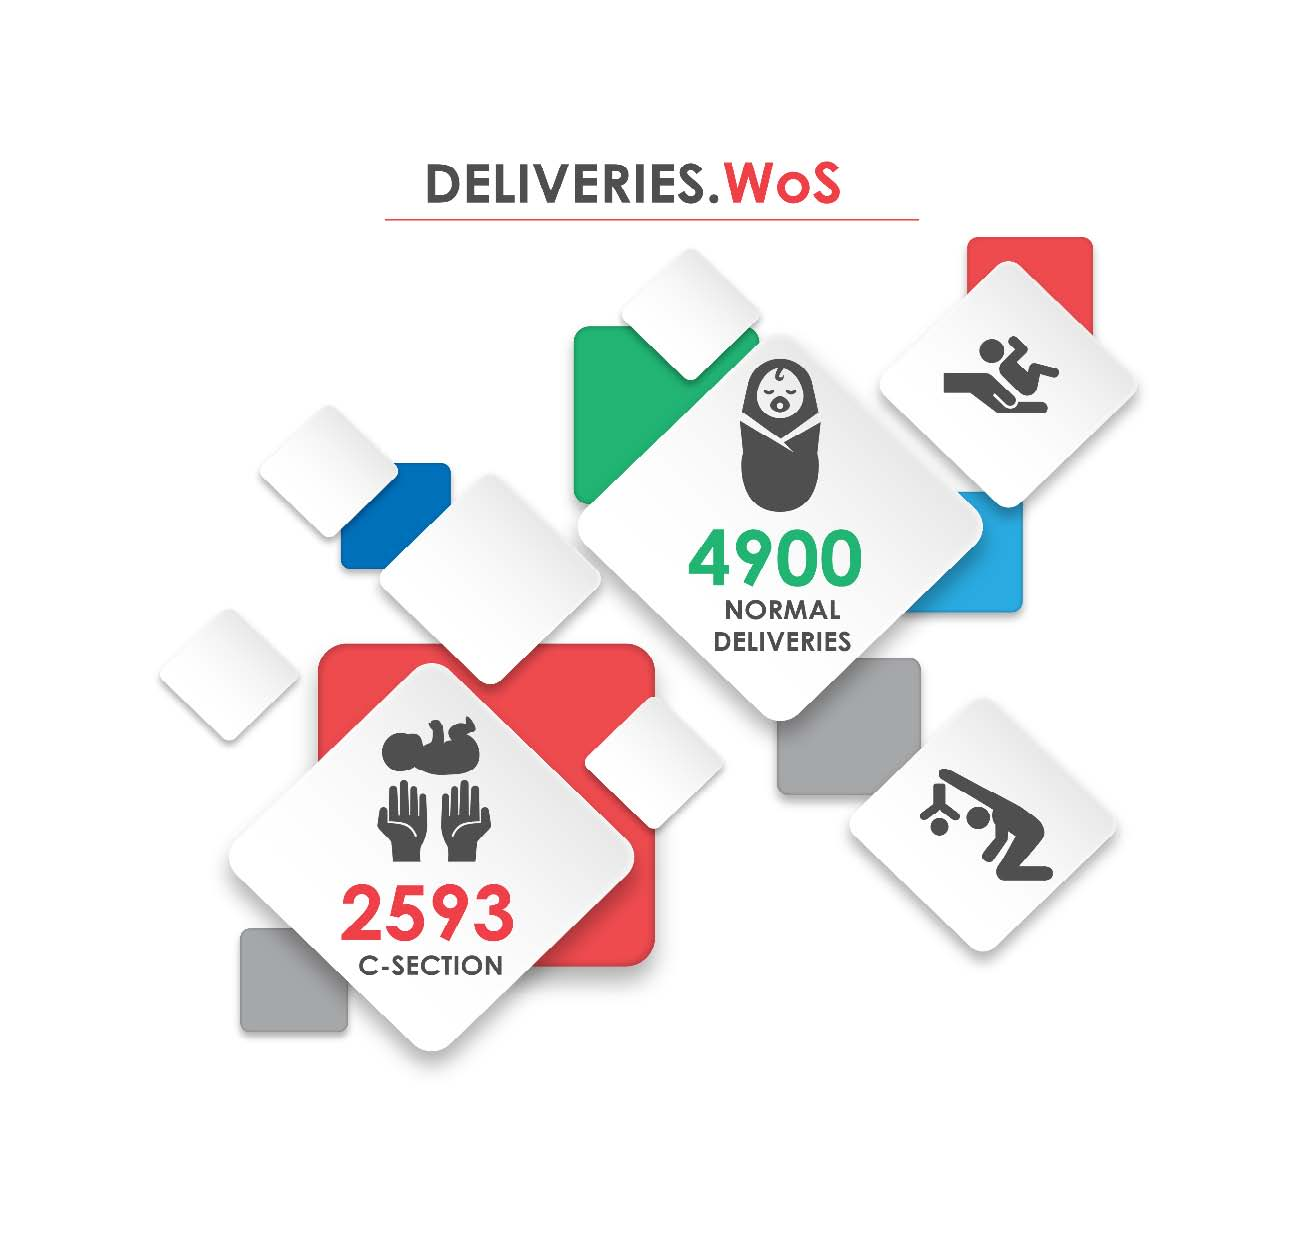 Fig._19.0_Number_of_Hospital_Deliveries__Whole_of_Syria.jpg